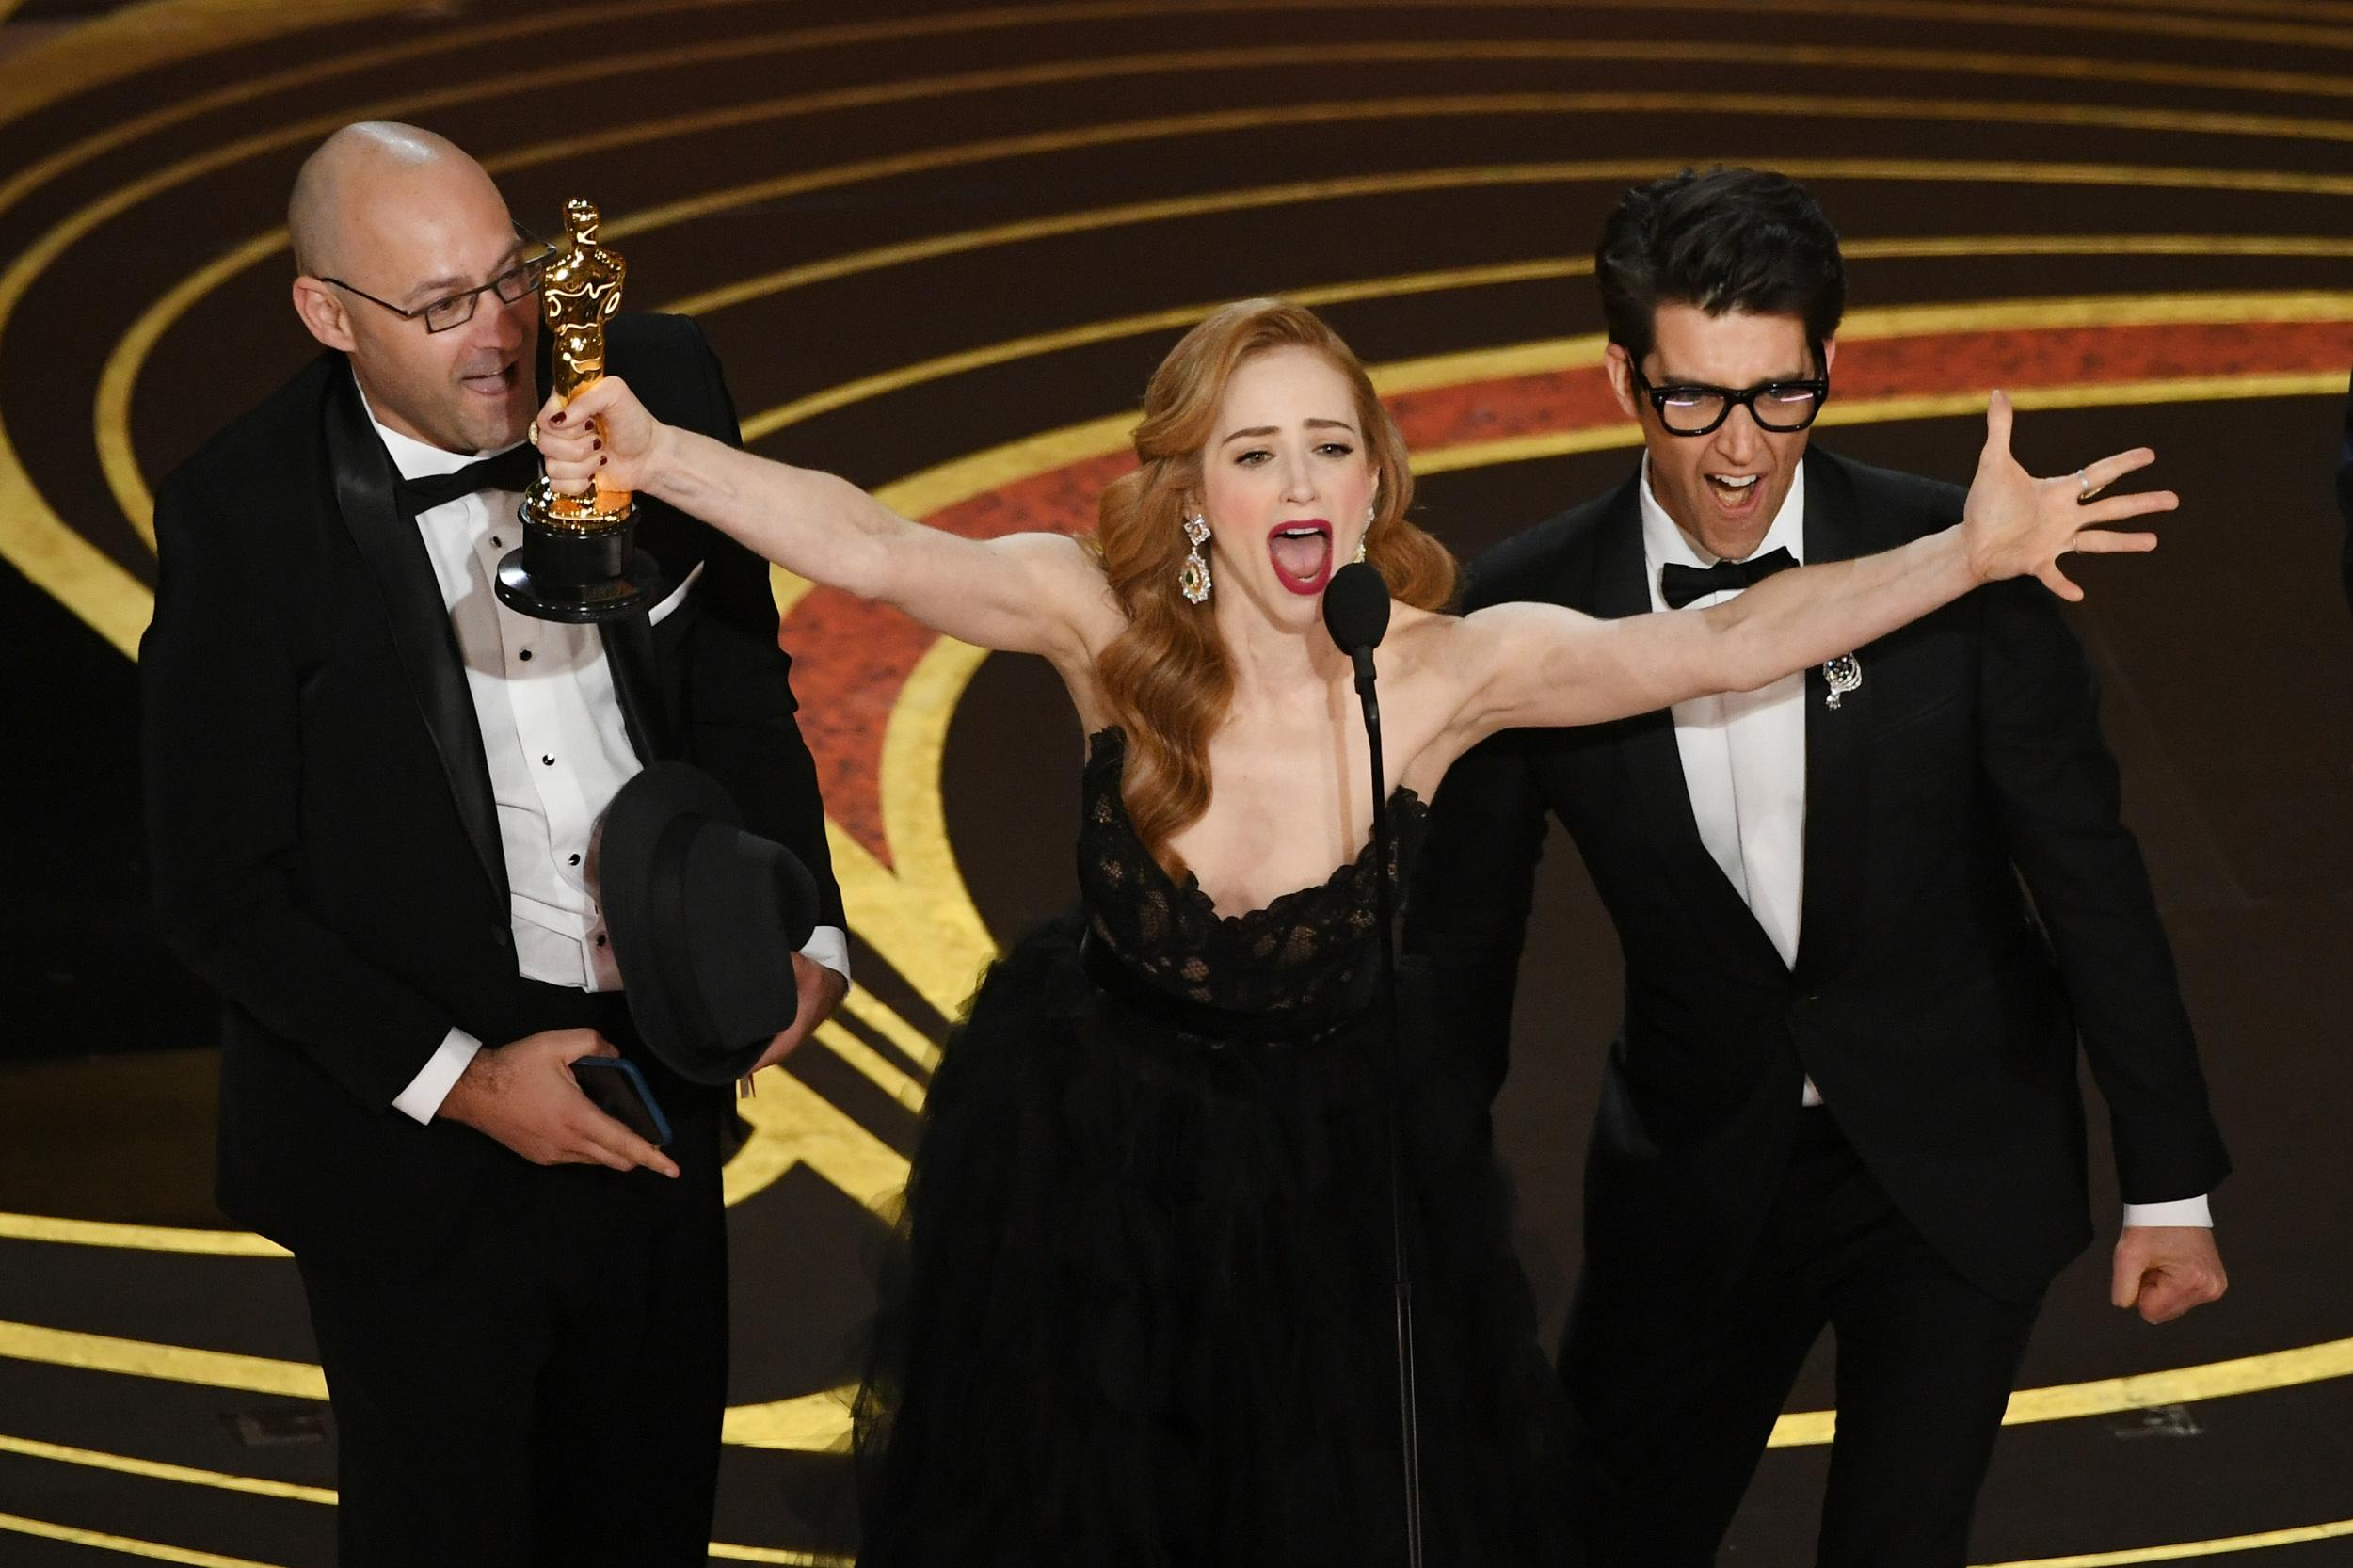 HOLLYWOOD, CALIFORNIA - FEBRUARY 24: (2nd L - R) Jaime Ray Newman and Guy Nattiv accept the Best Live Action Short Film award for 'Skin' onstage during the 91st Annual Academy Awards at Dolby Theatre on February 24, 2019 in Hollywood, California. (Photo by Kevin Winter/Getty Images)